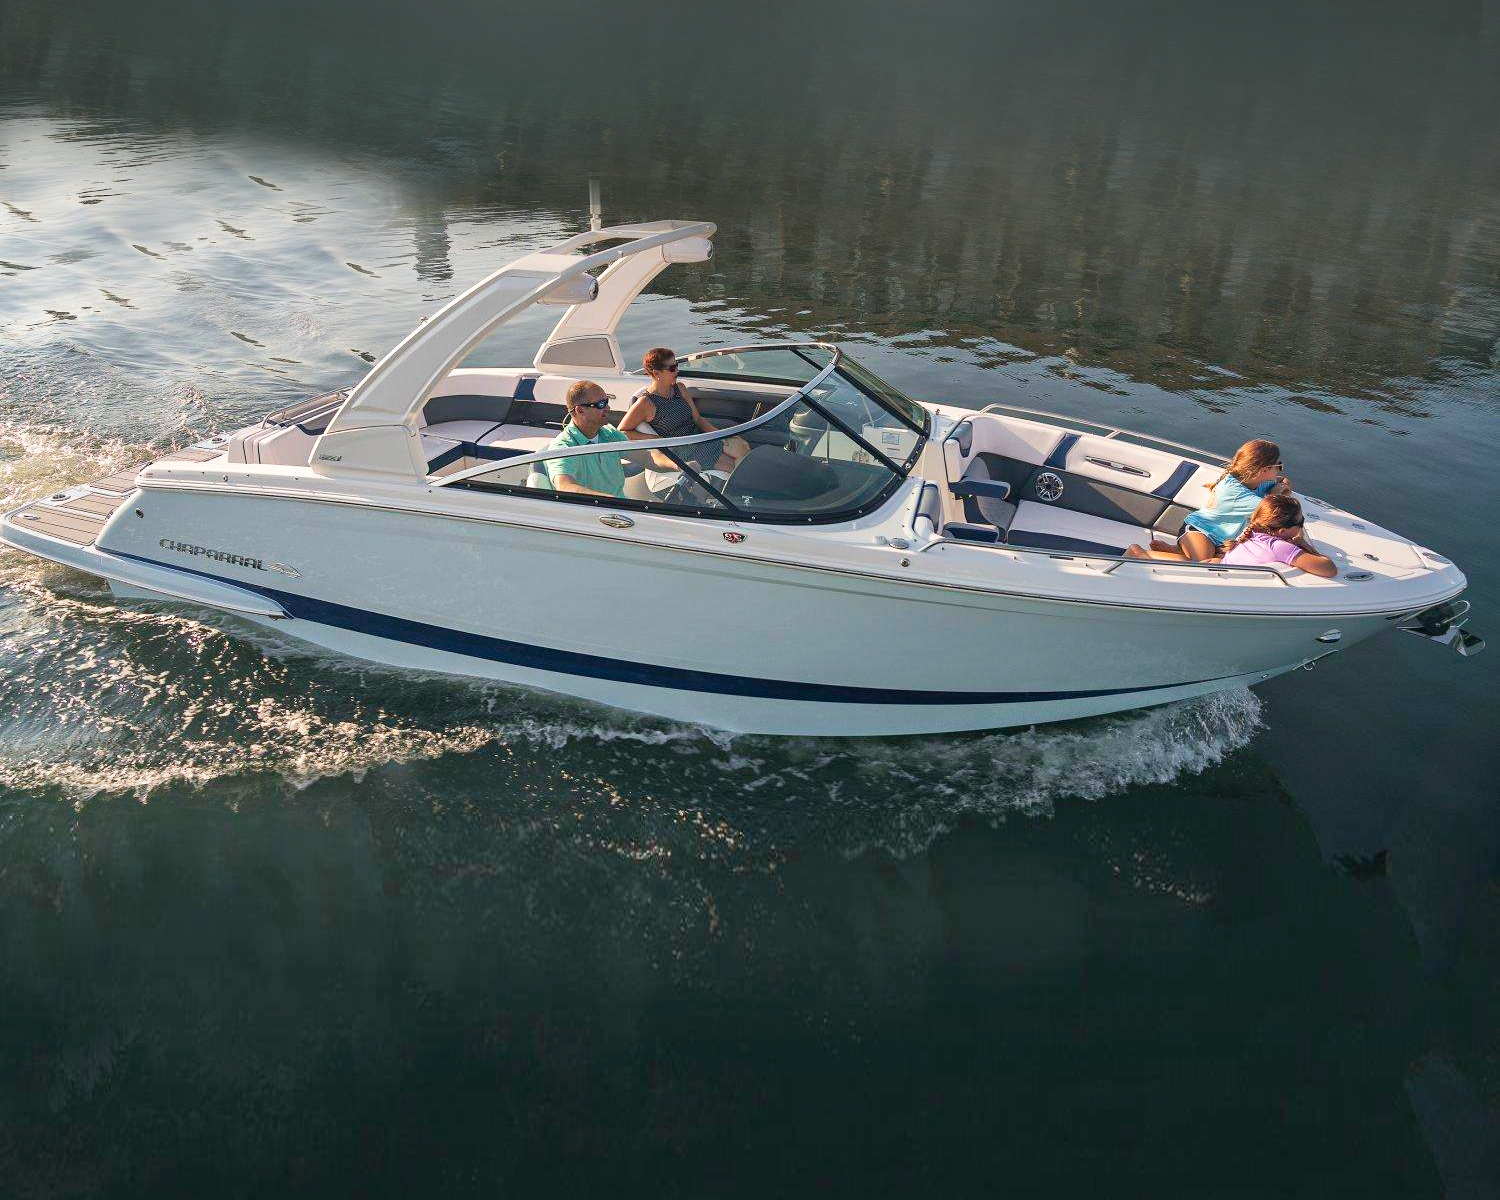 2021 Chaparral 287 SSX Runabout Boat